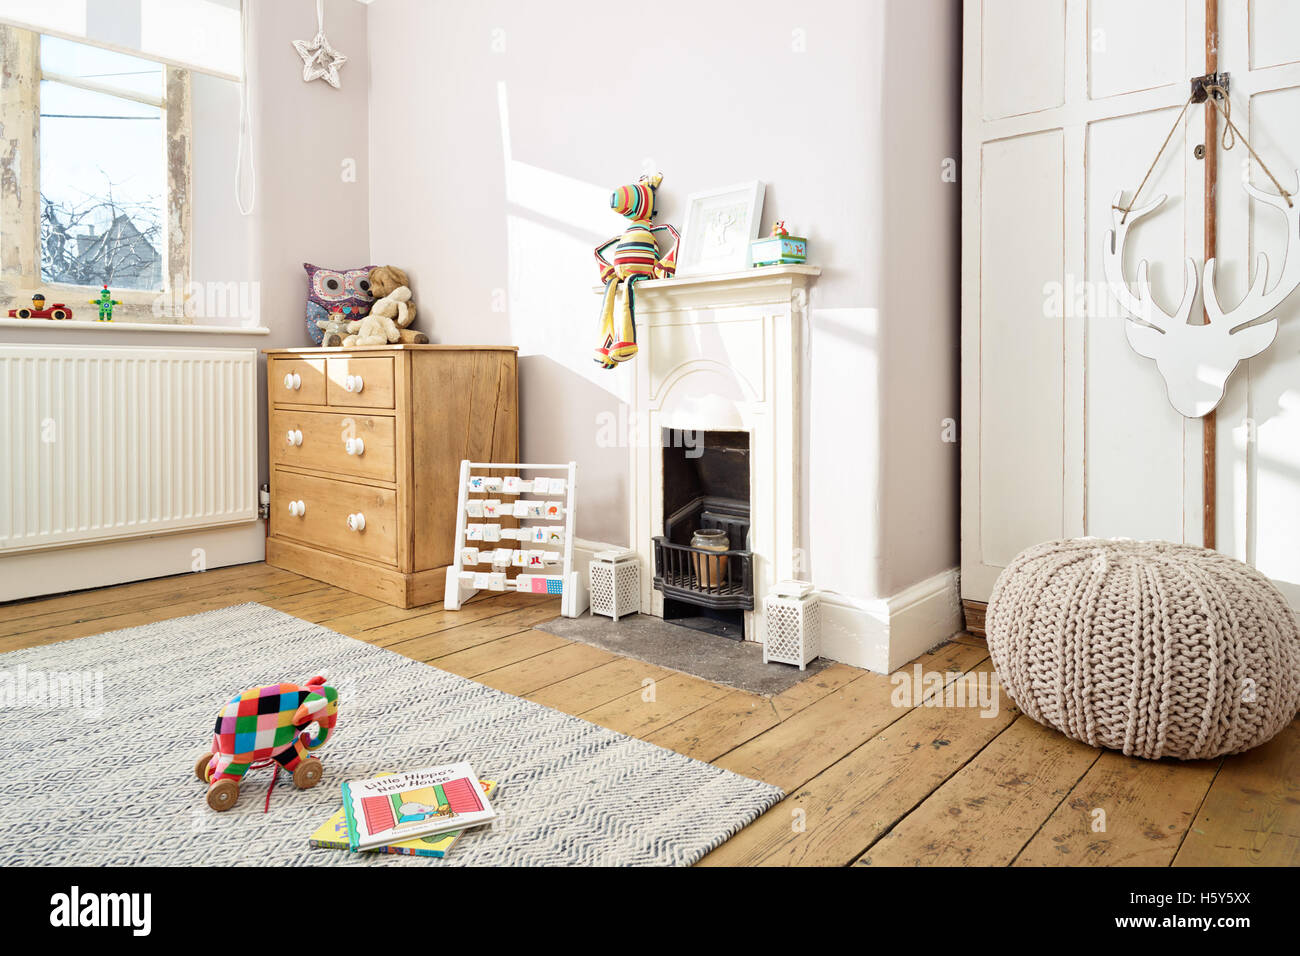 A traditional child's nursery in a modernised British Victorian home - Stock Image